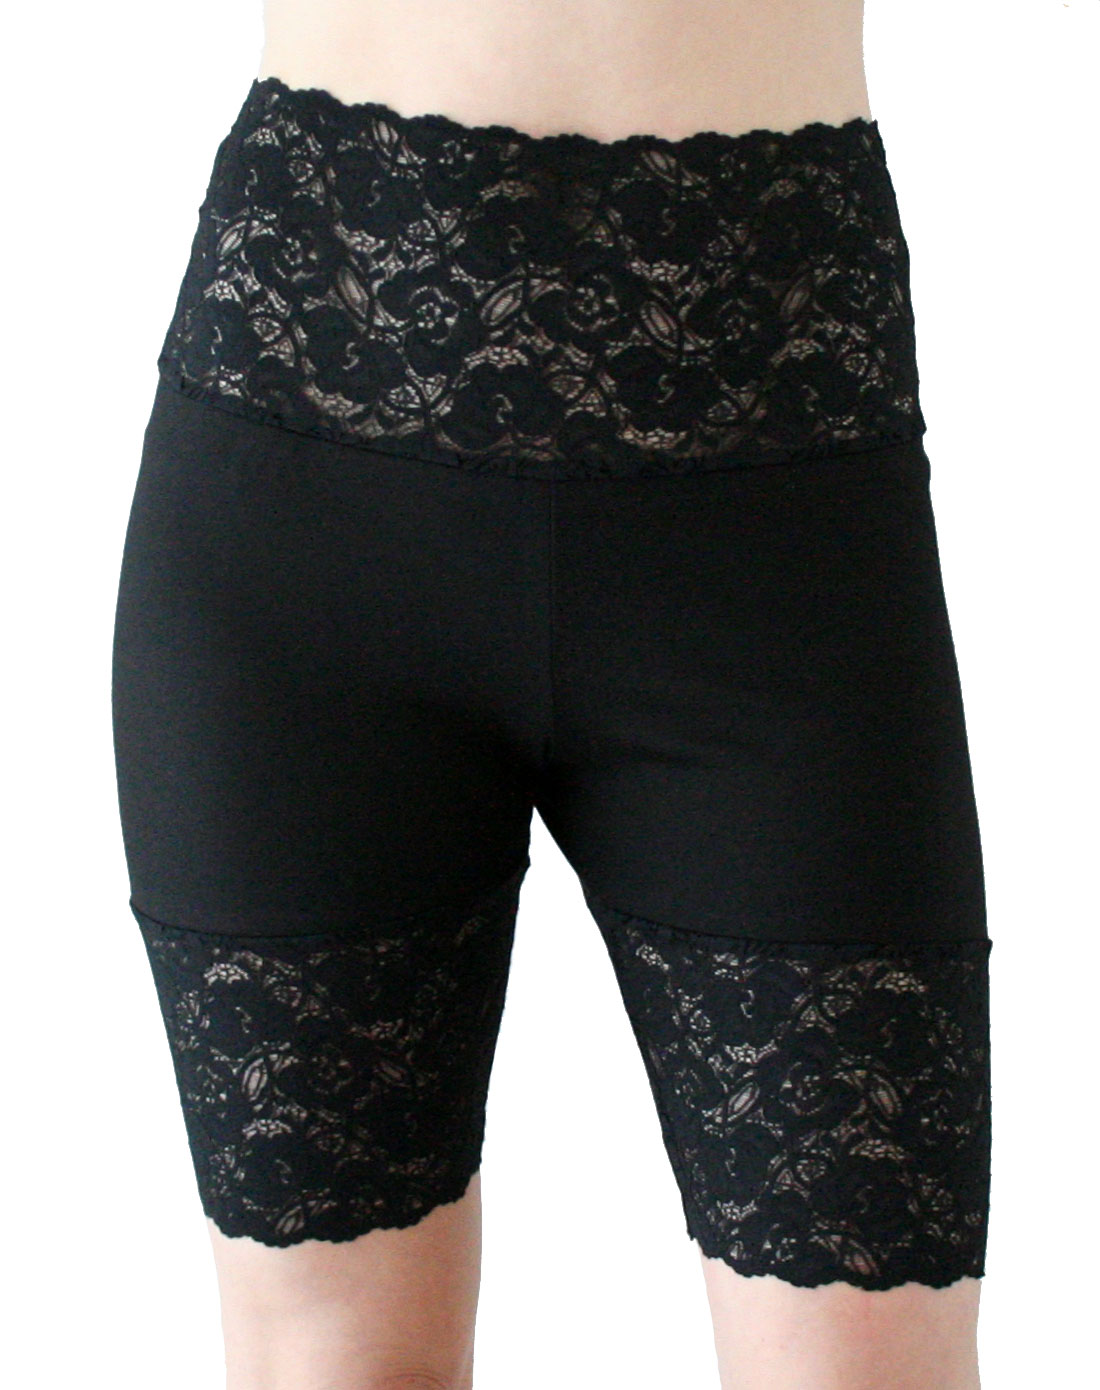 Plus size high waisted black shorts